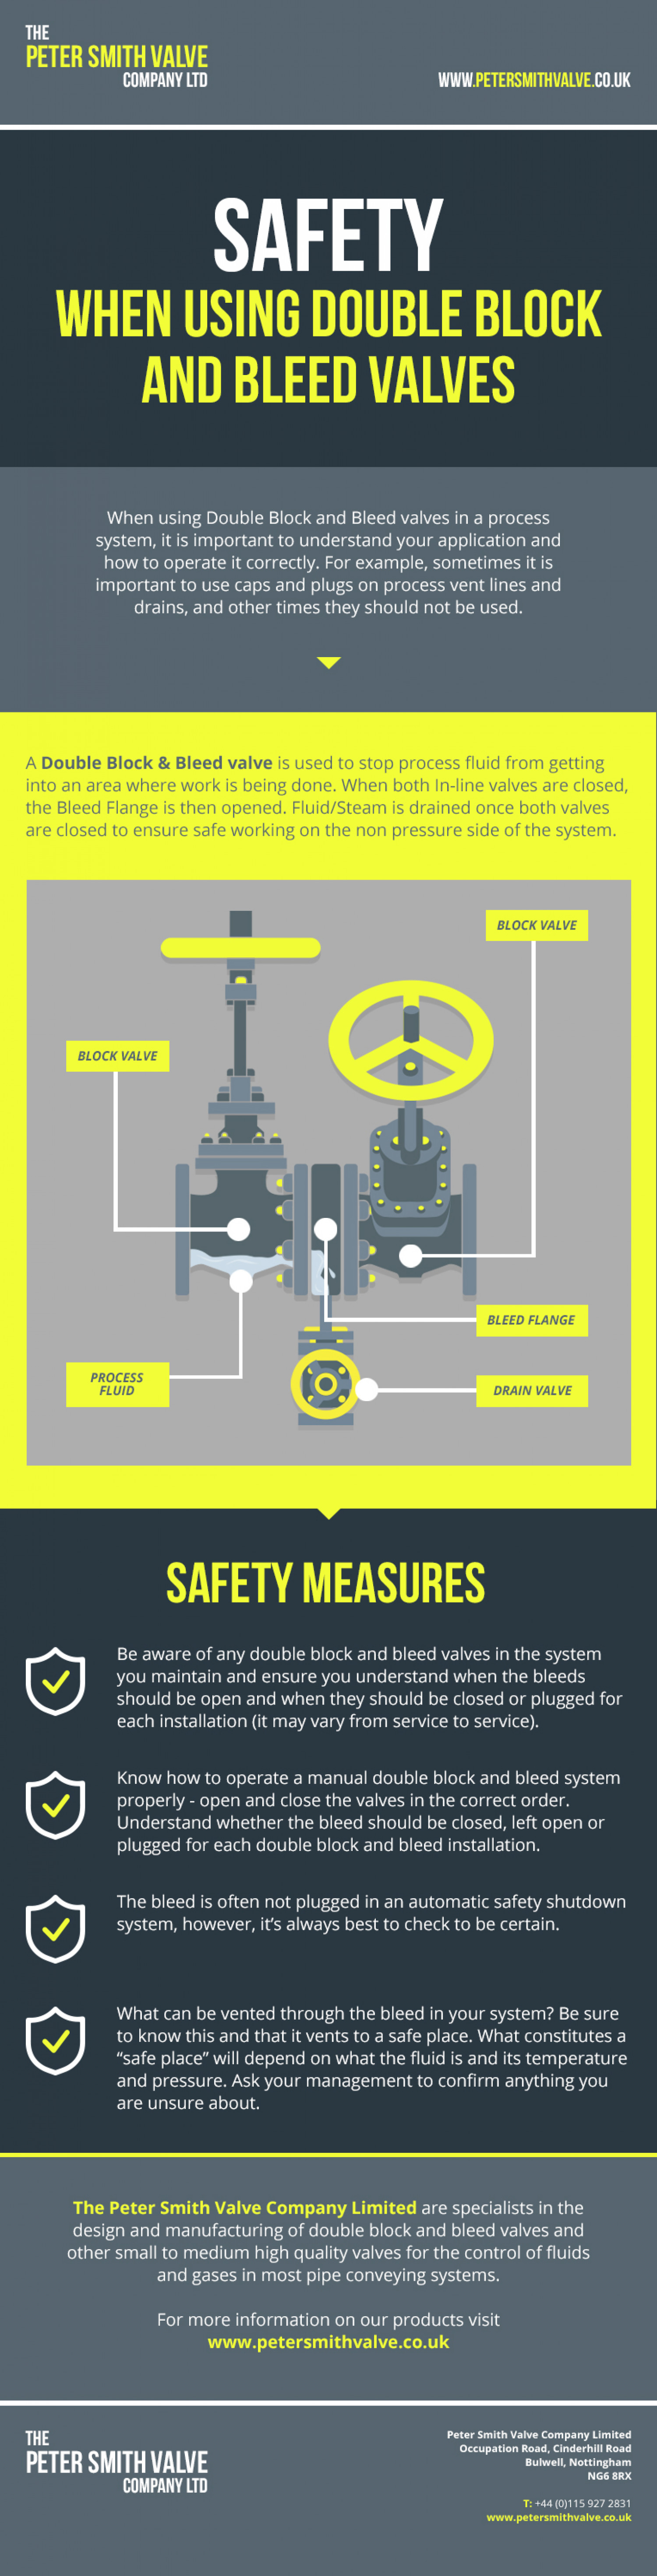 Safety When Using Double Block and Bleed Valves Infographic